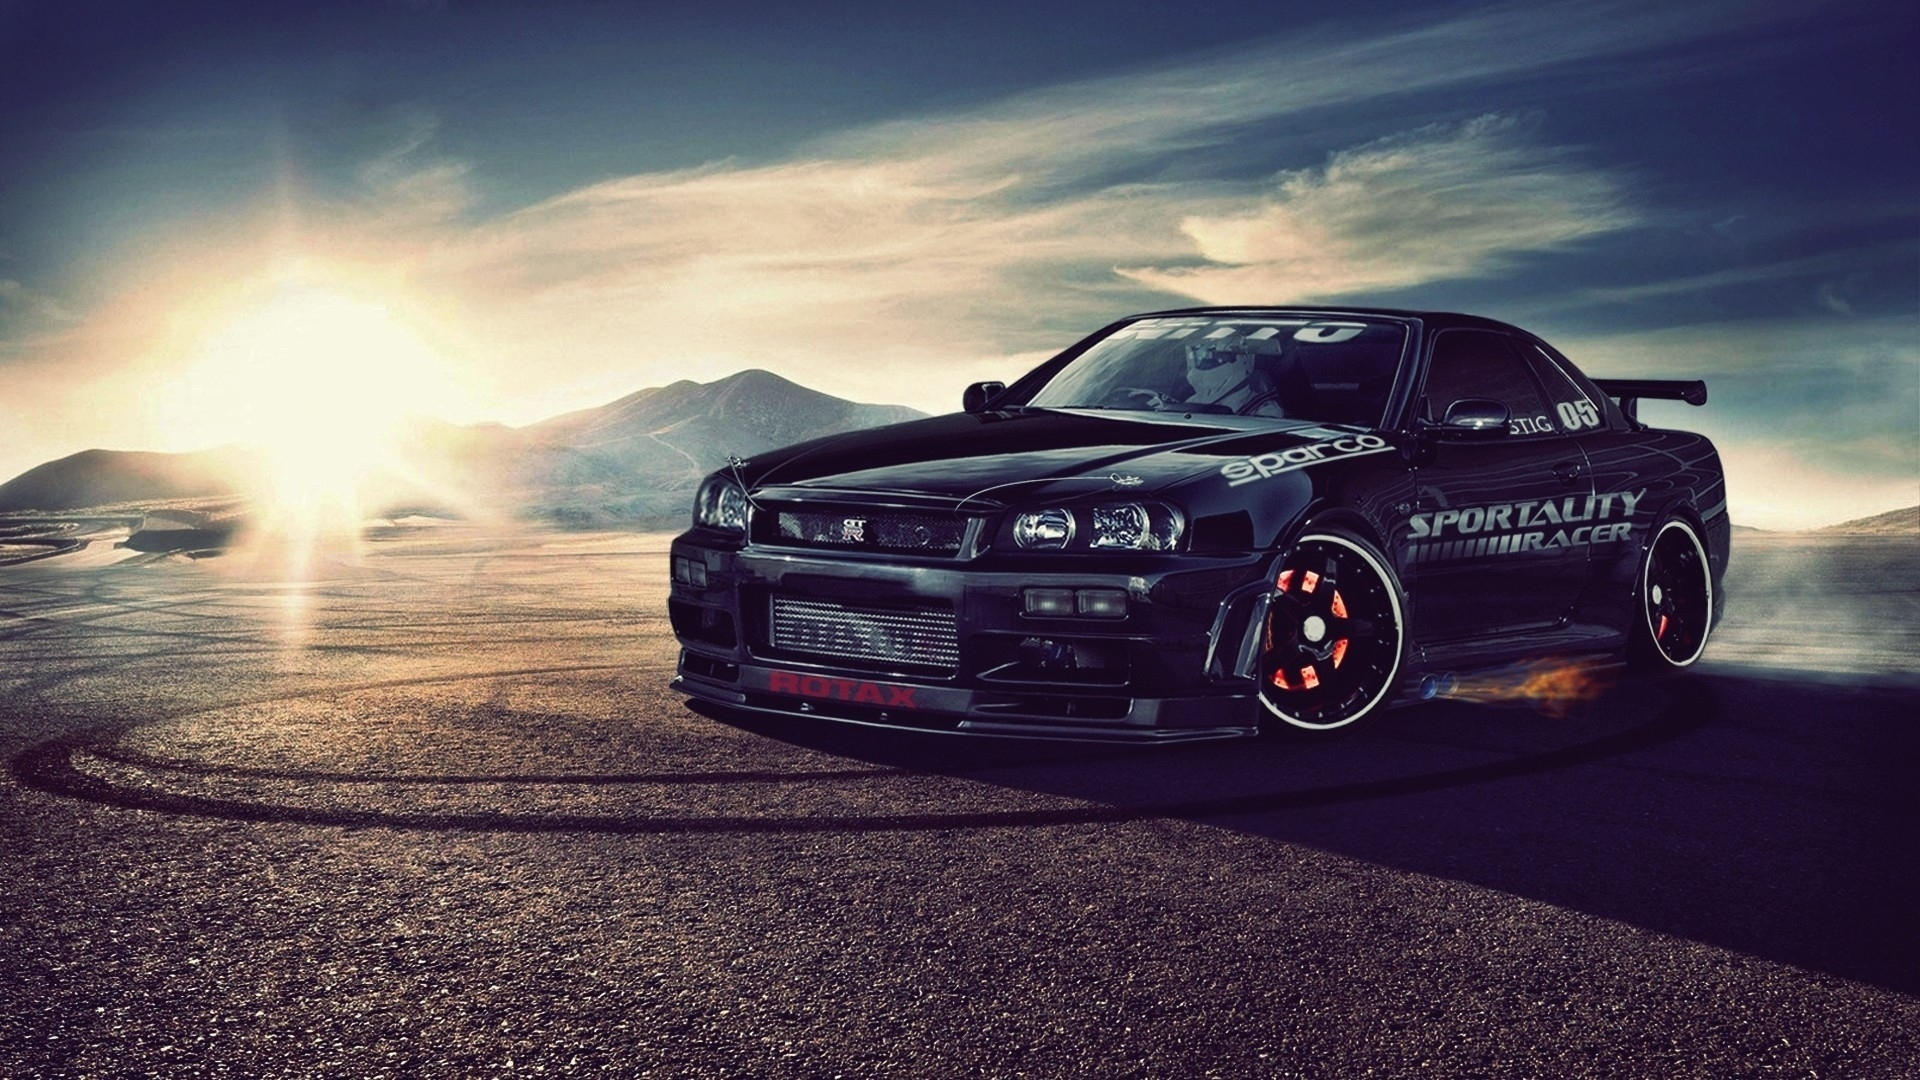 nissan skyline r34 gt-r papier peint | allwallpaper.in #15526 | pc | fr